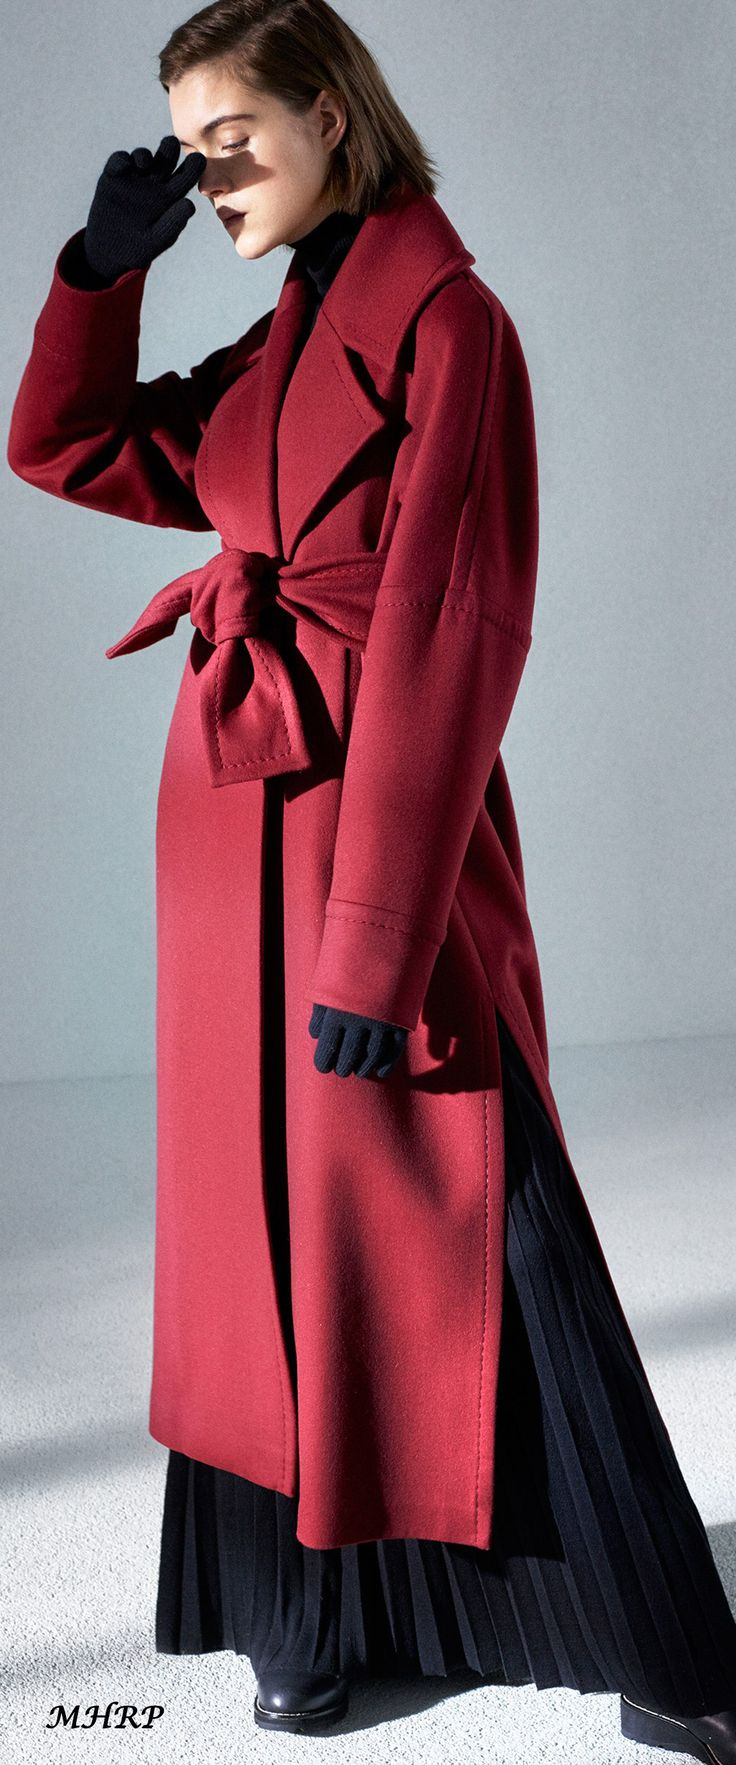 max-mara-atelier-fall-2018_pinned from vogue.com/fashion-show